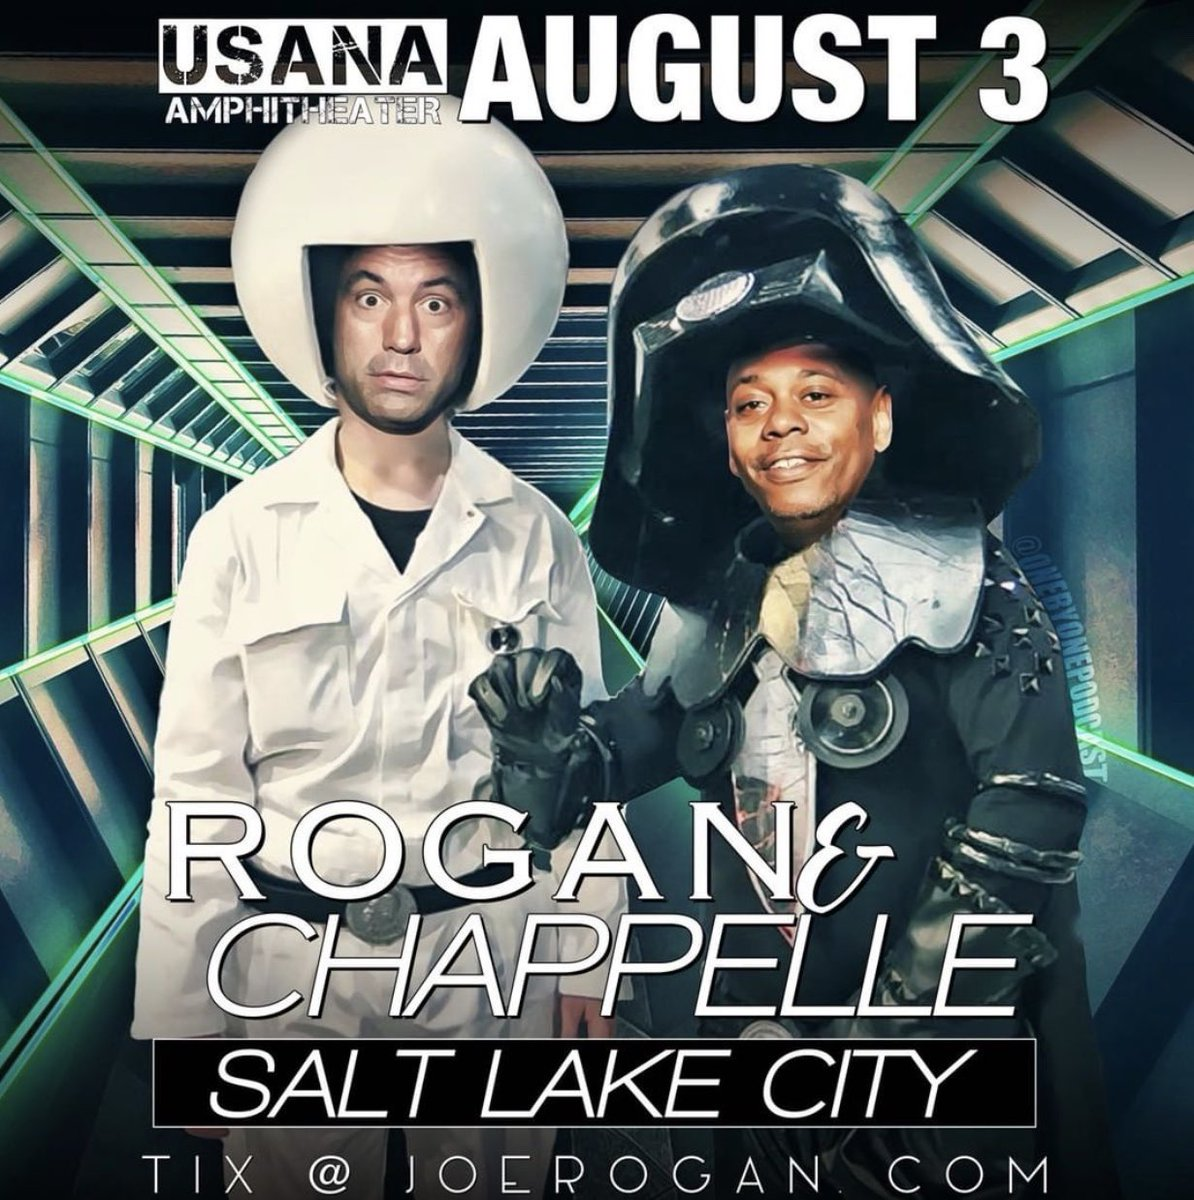 Salt Lake City! Tickets at joerogan.com